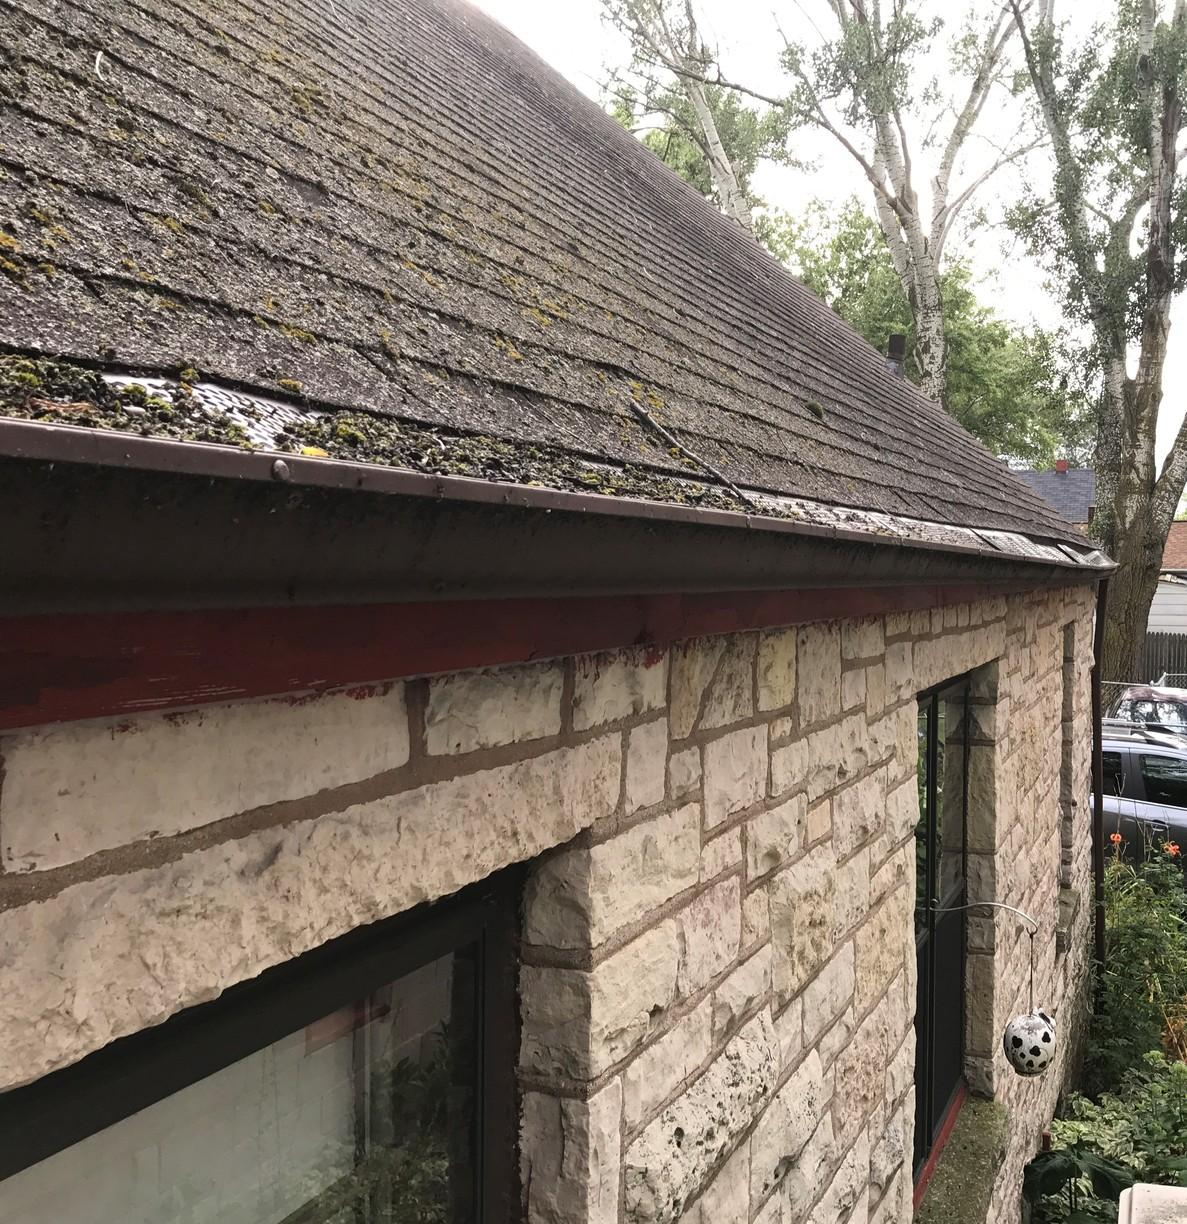 GAF Roof and LeafGuard Gutters Installed in Depere, WI - Before Photo